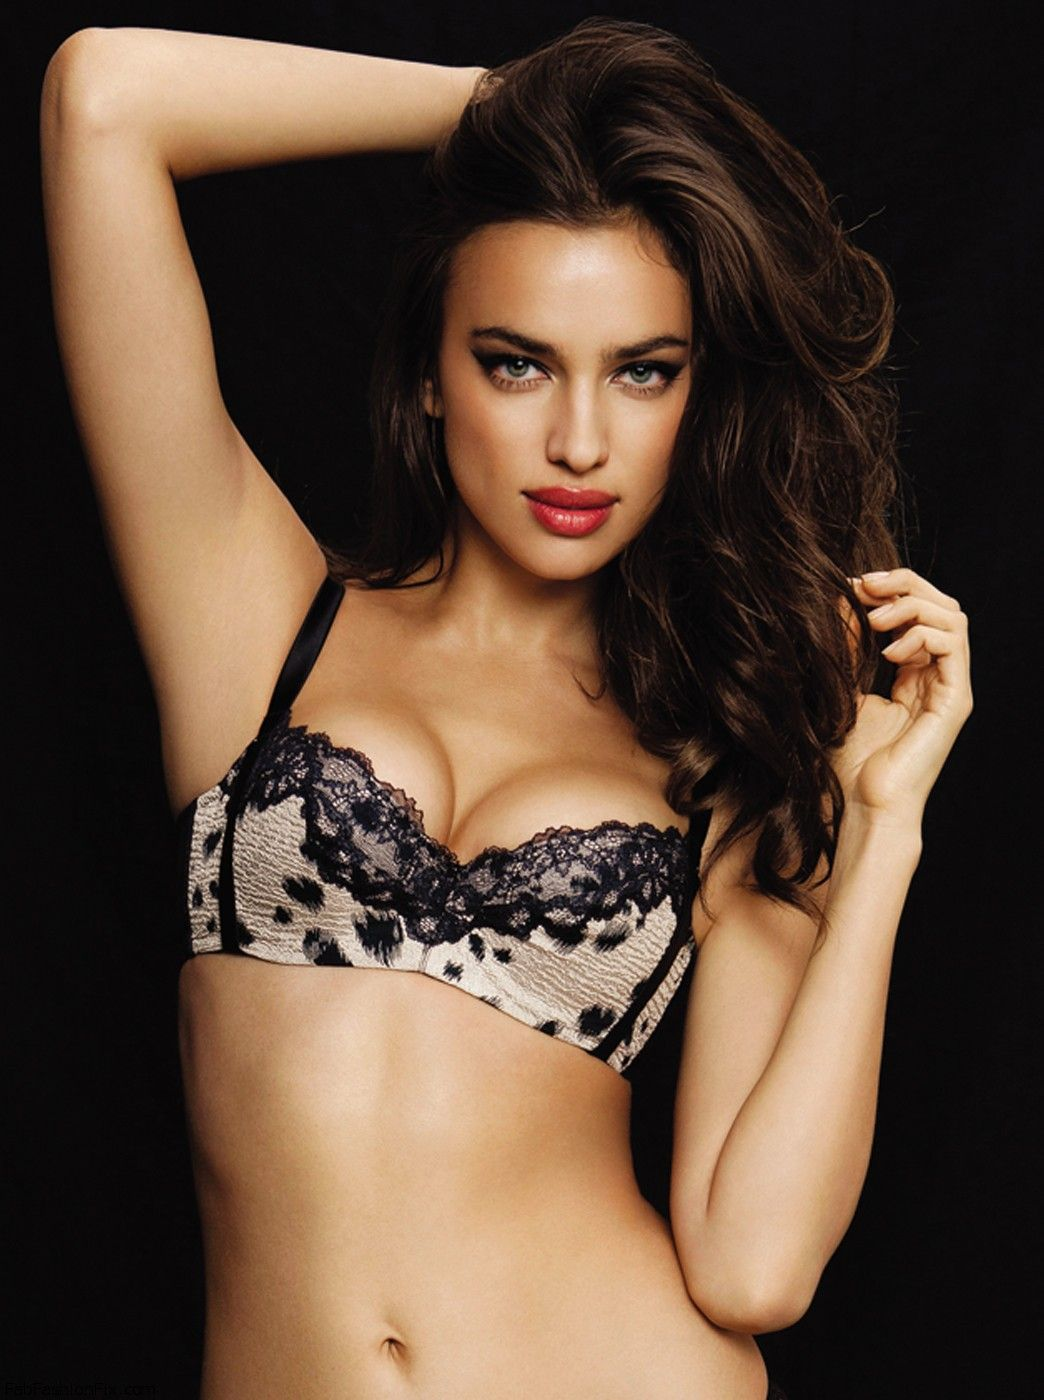 Irina Shayk for La Clover Lingerie Valentine's Day 2013 Collection